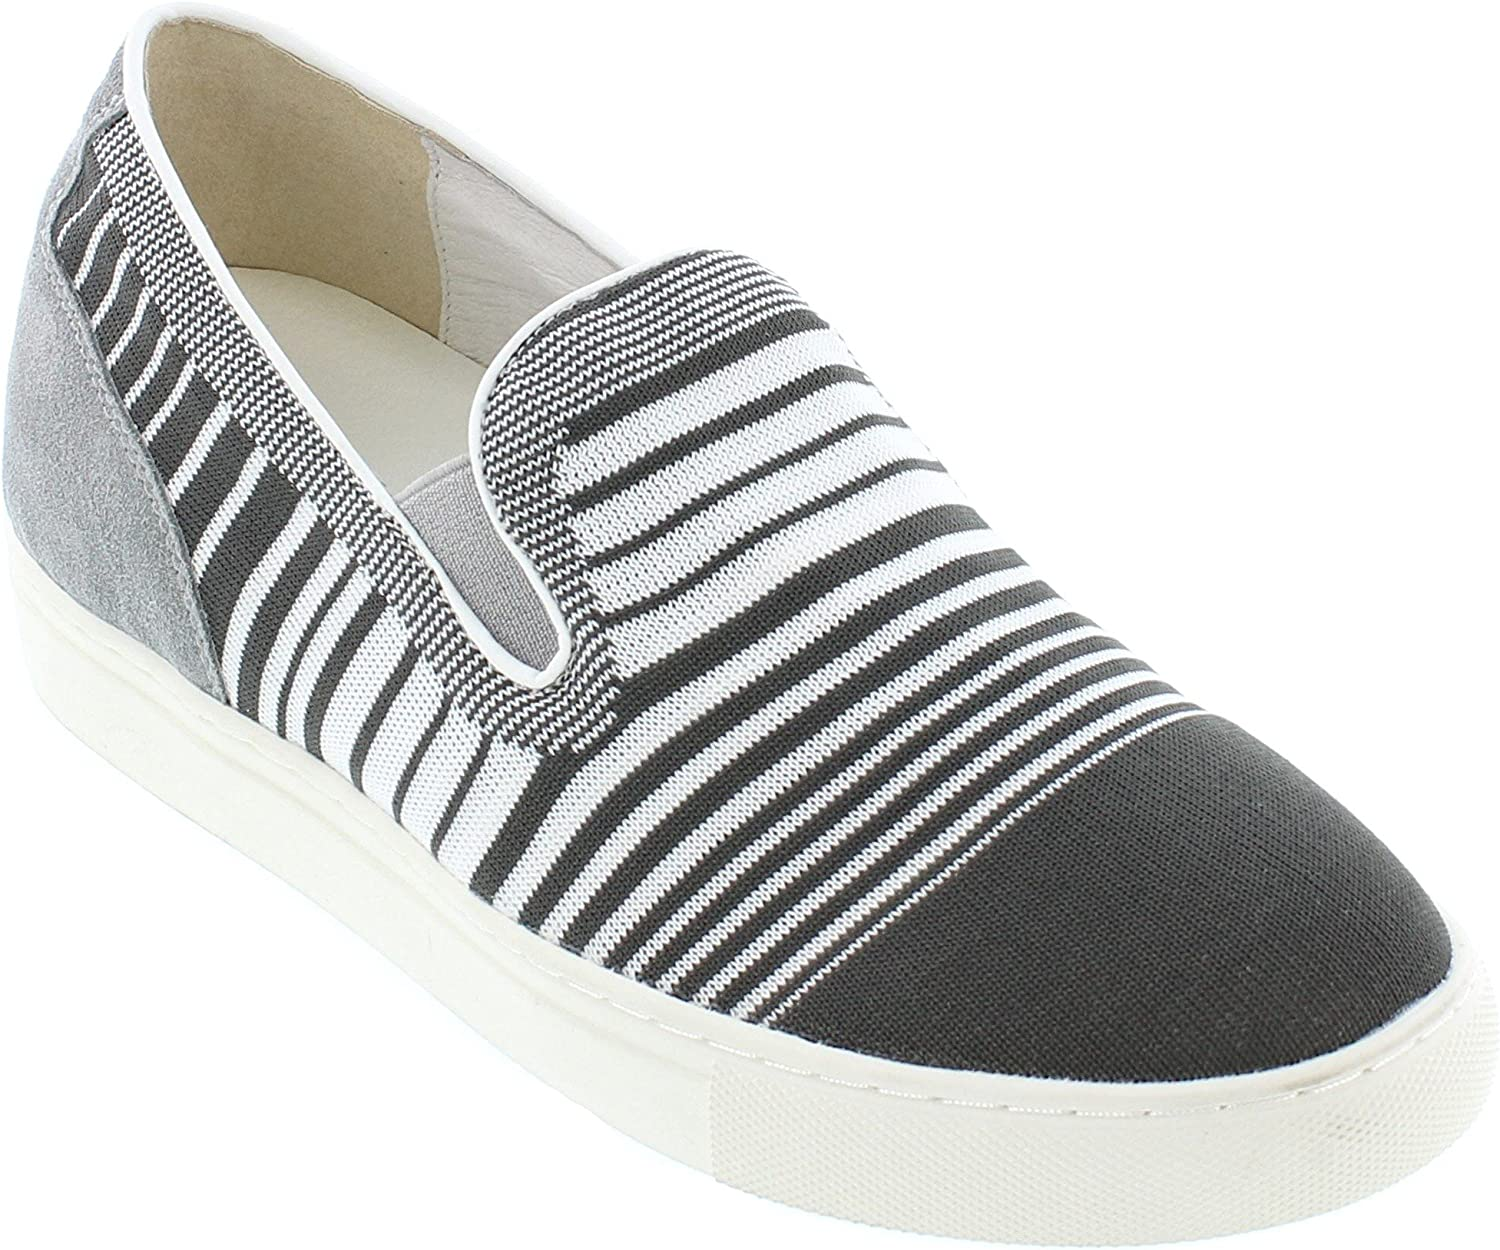 CALTO Men's Invisible Height Increasing Elevator Trainer shoes - Grey Knitted Slip-on Lightweight Fashion Sneakers - 2.4 Inches Taller - H55063